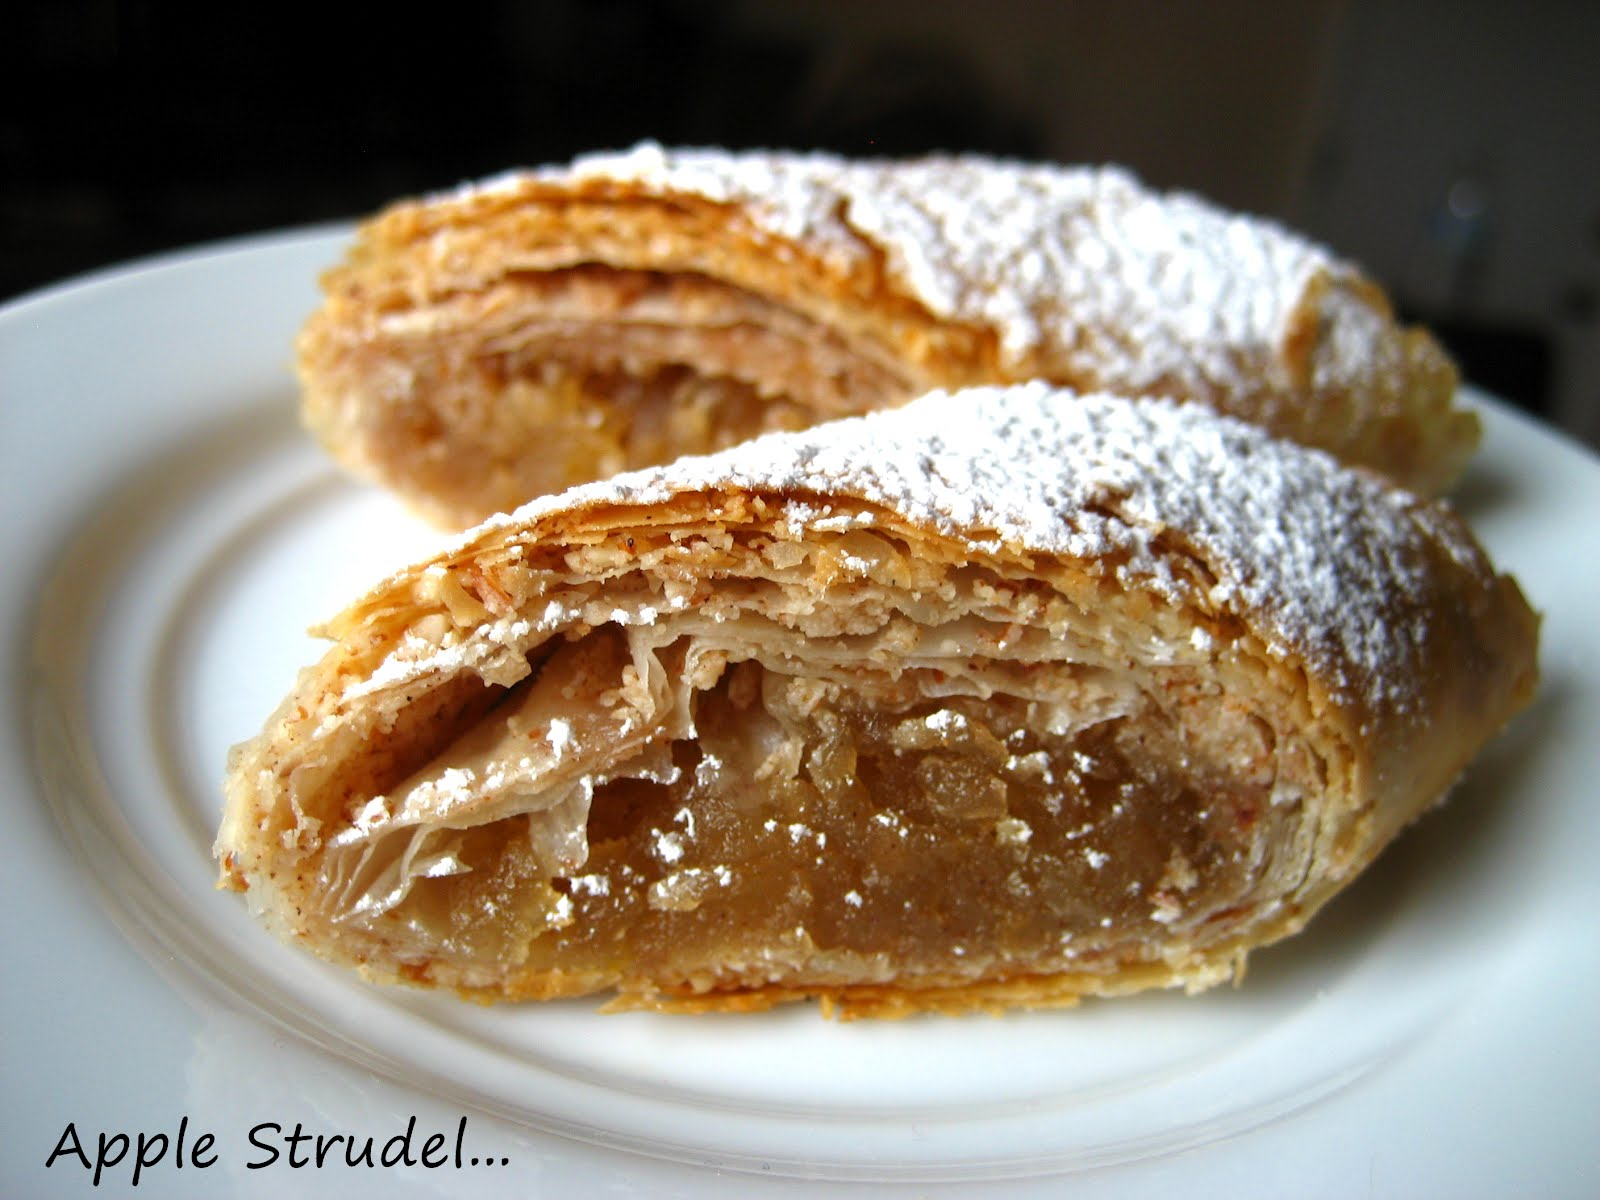 ... Cooking In Montana: Apple Strudel... my new favorite apple dessert